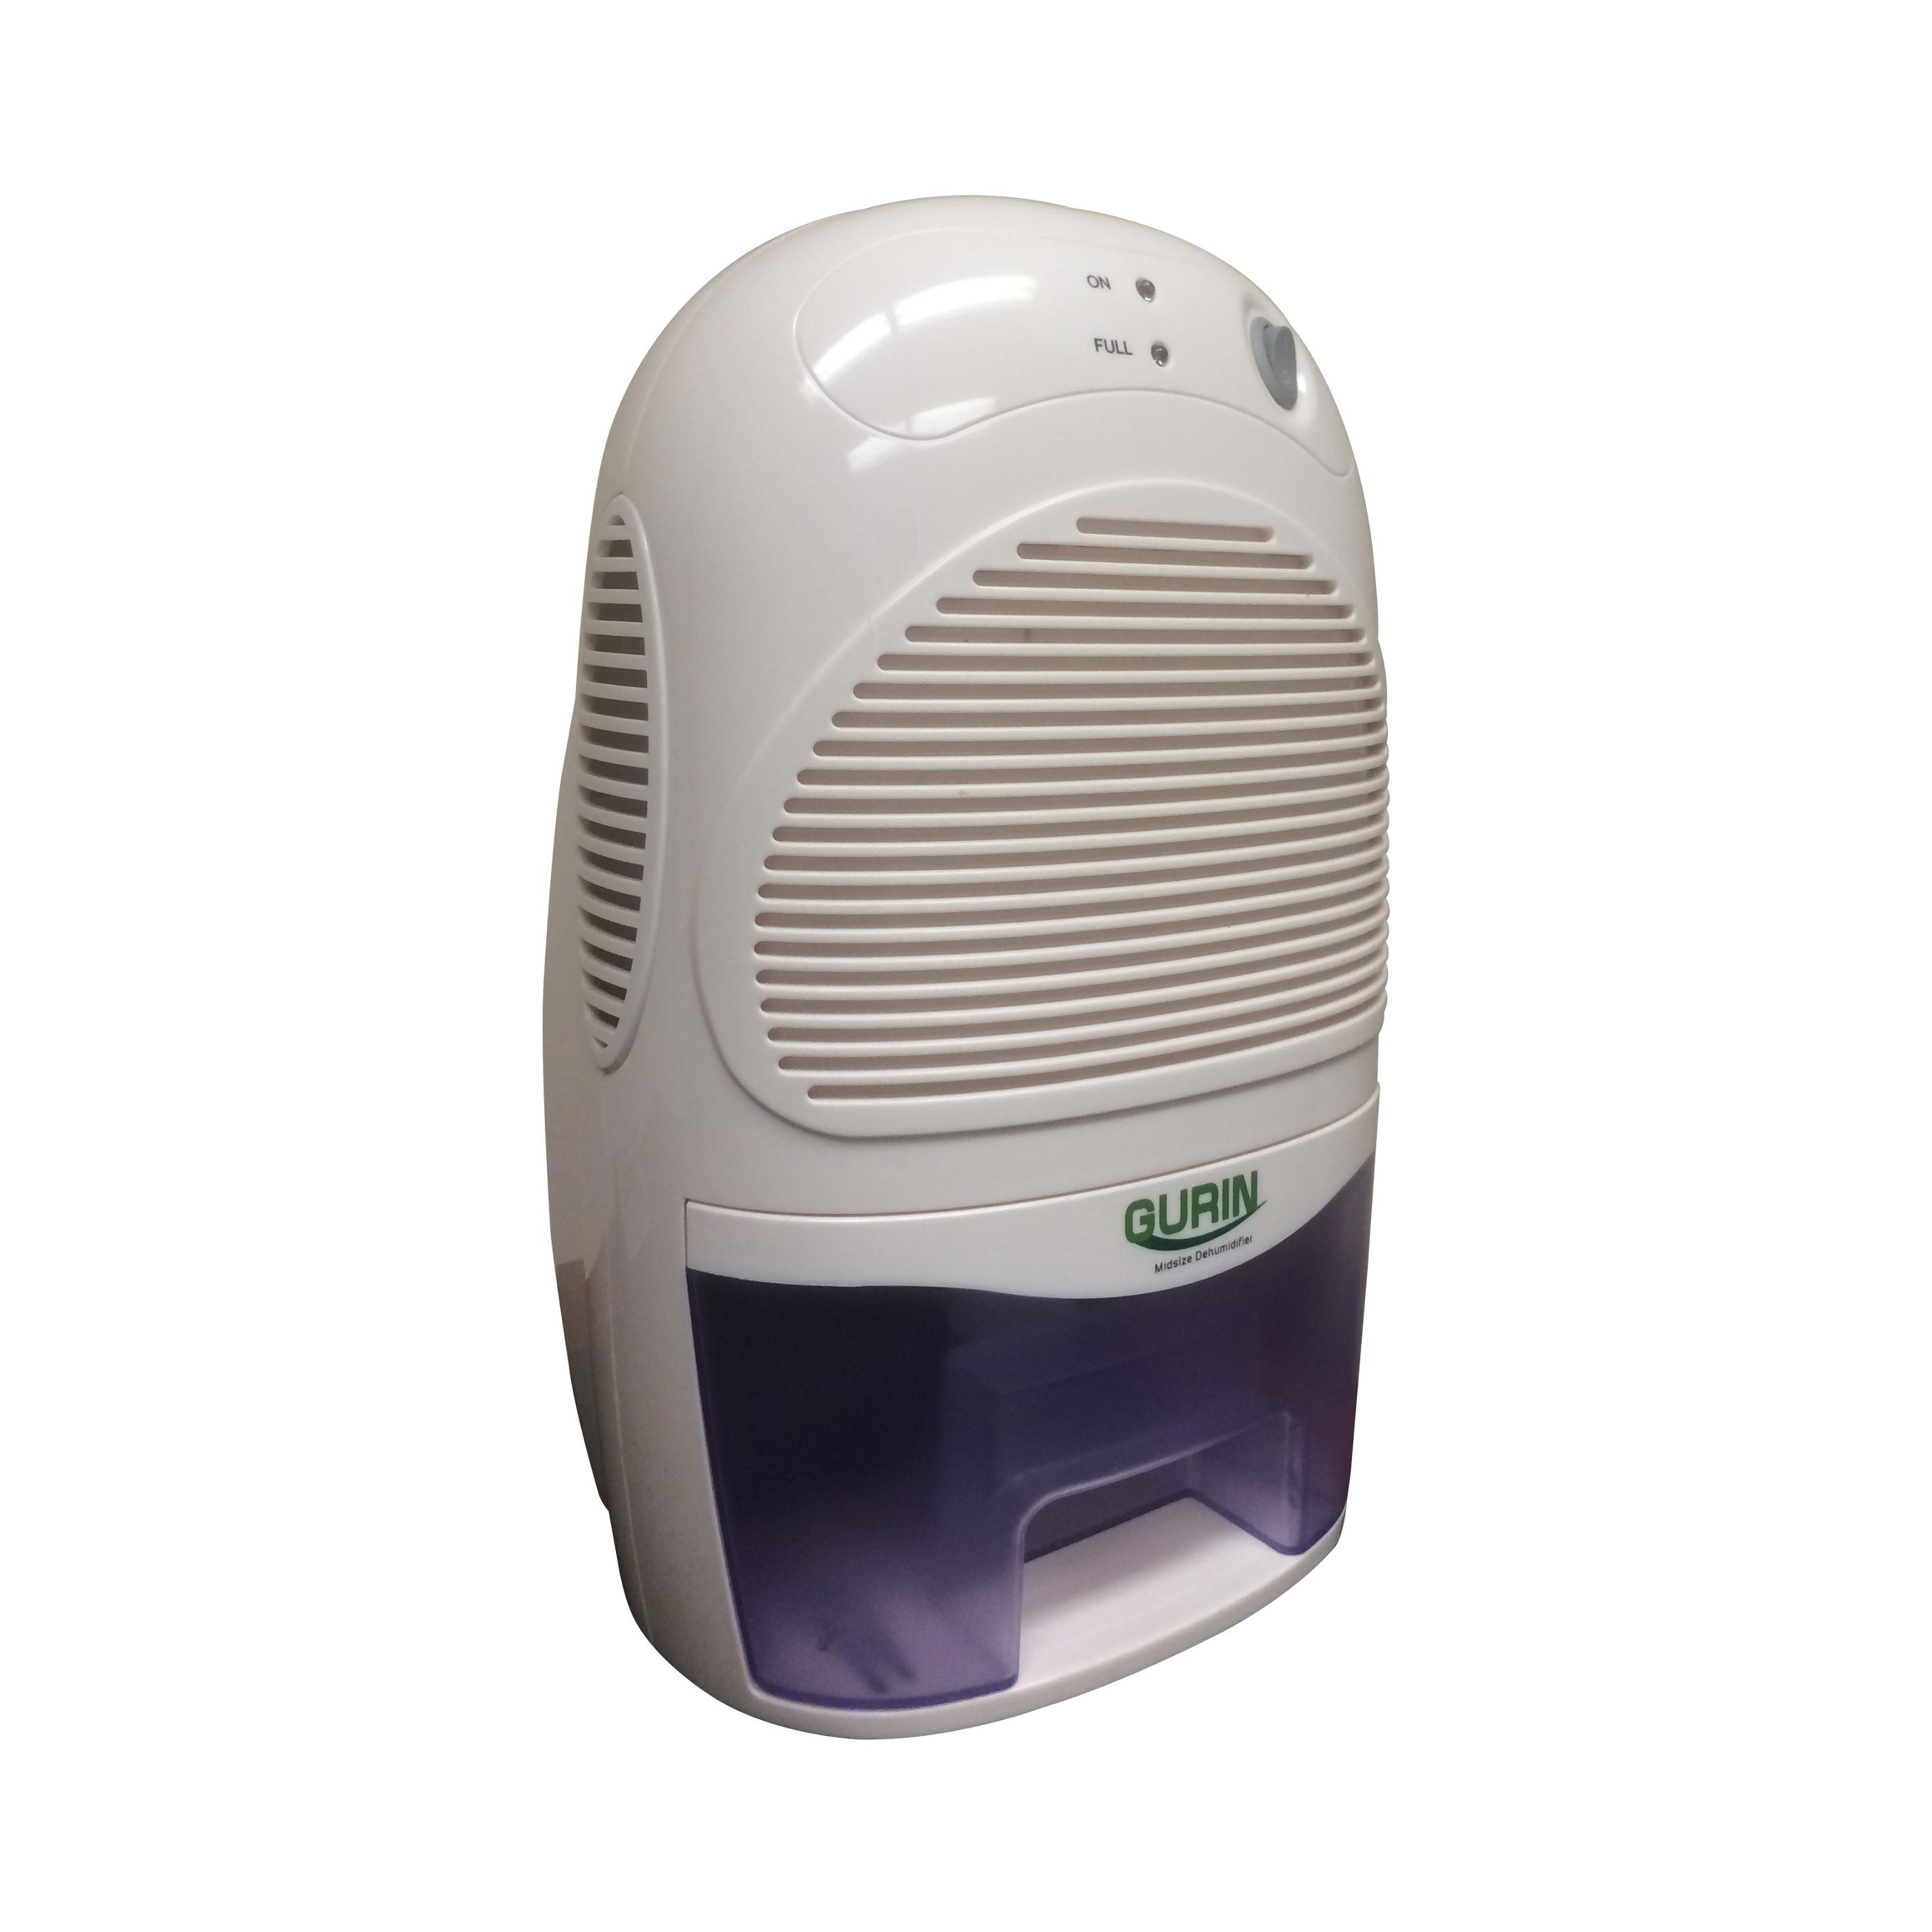 Gurin DHMD 310 Mid Size Electric Dehumidifier with 1500ml Tank #4B415D